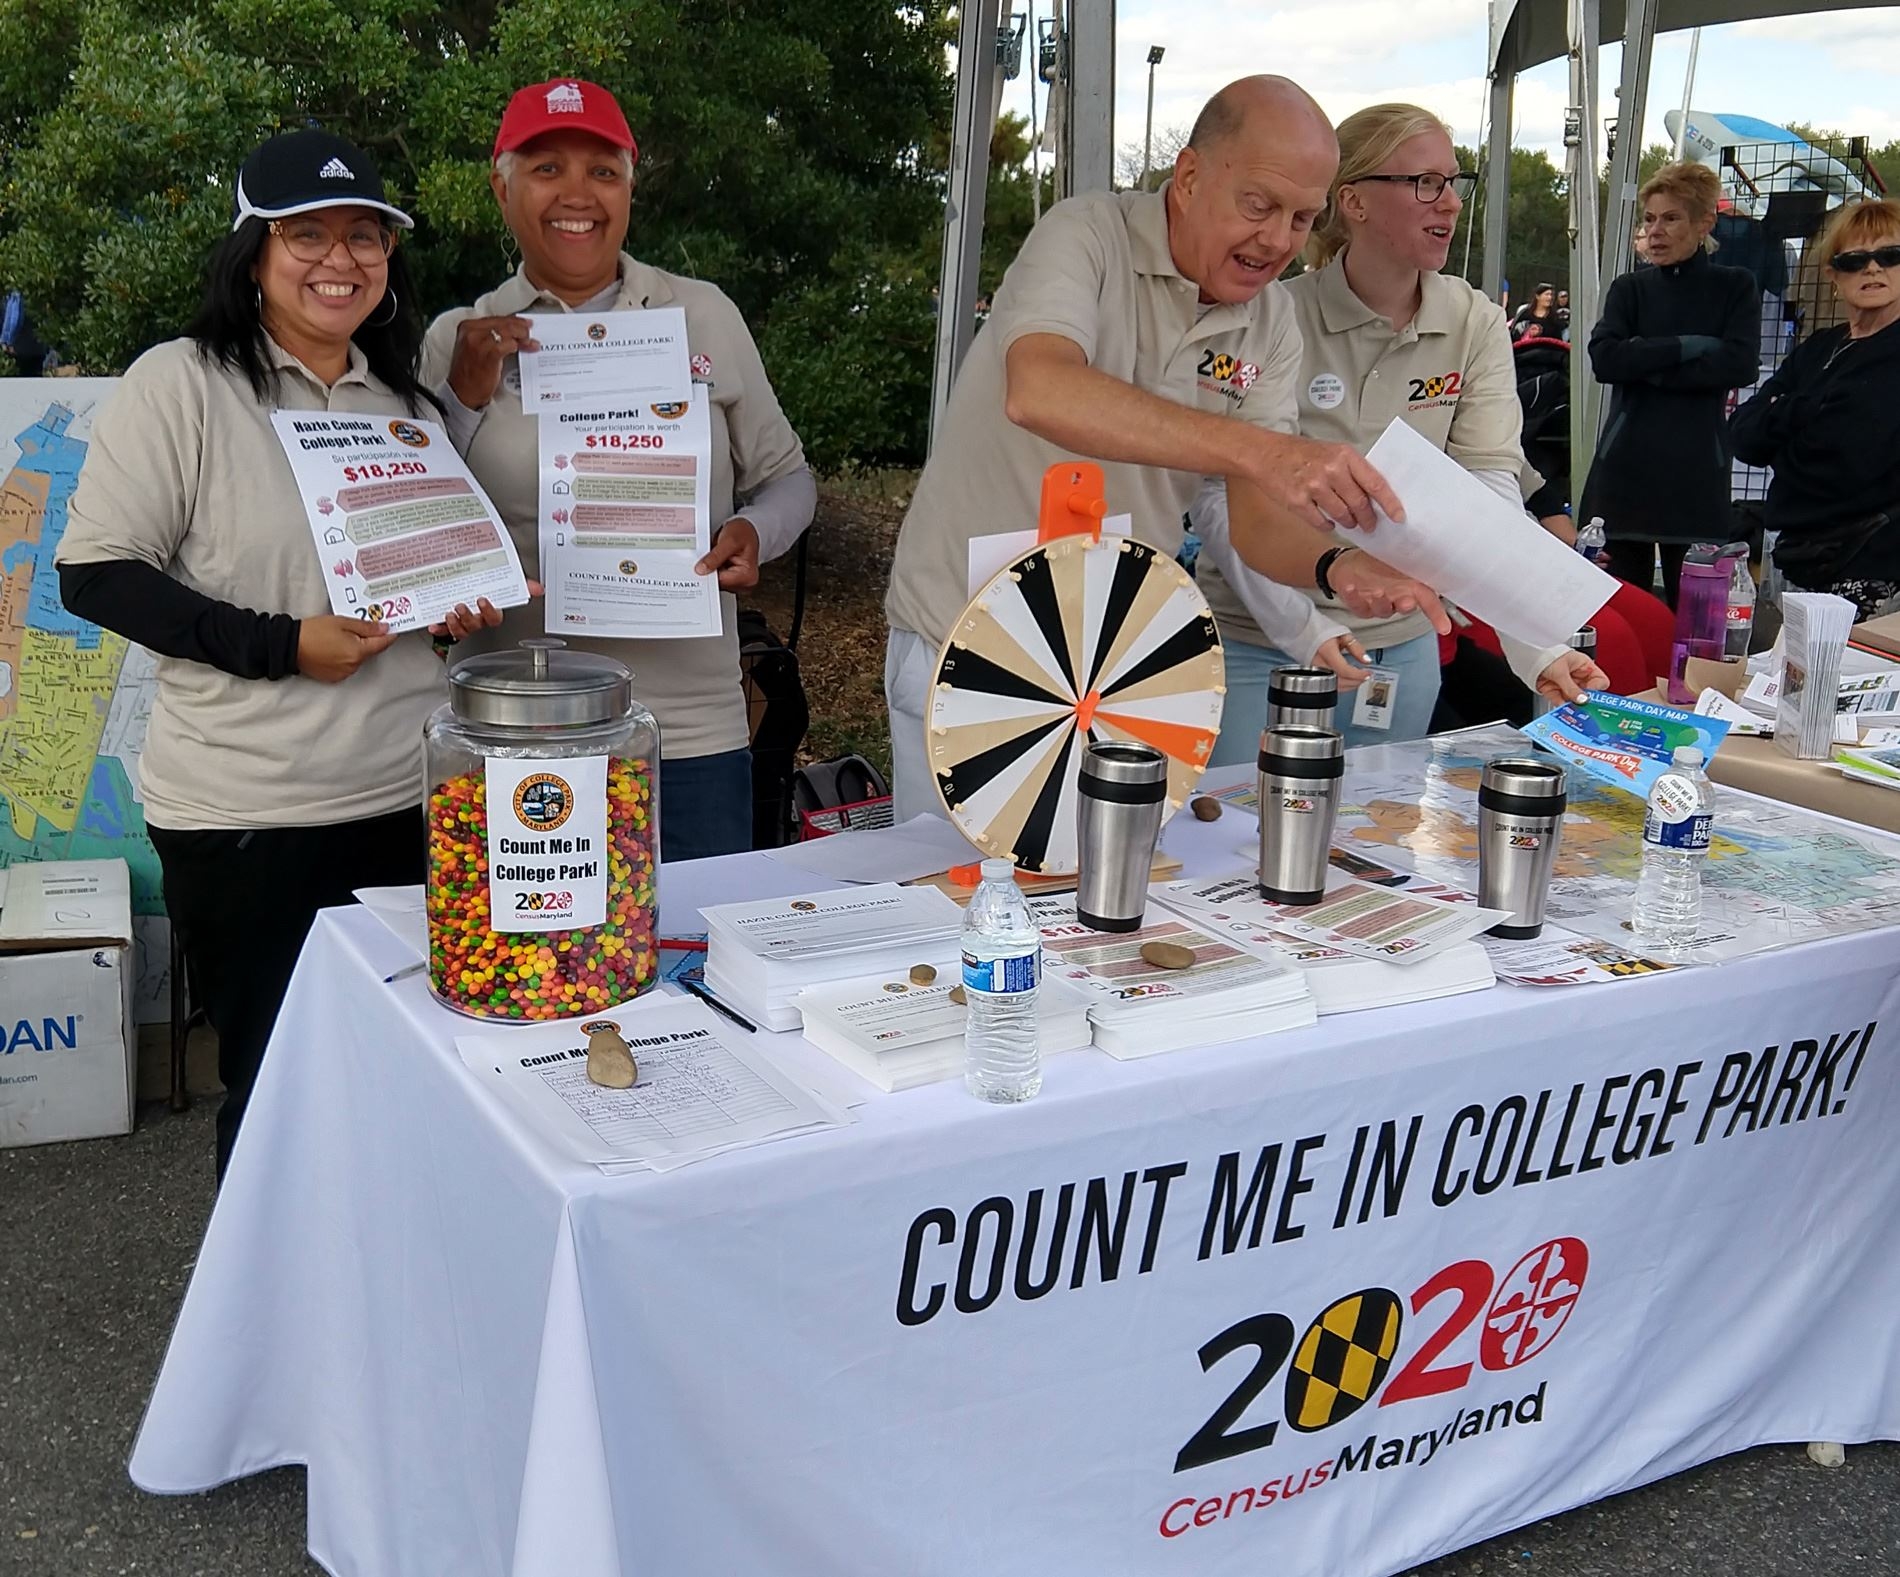 Census - College Park Day 2019